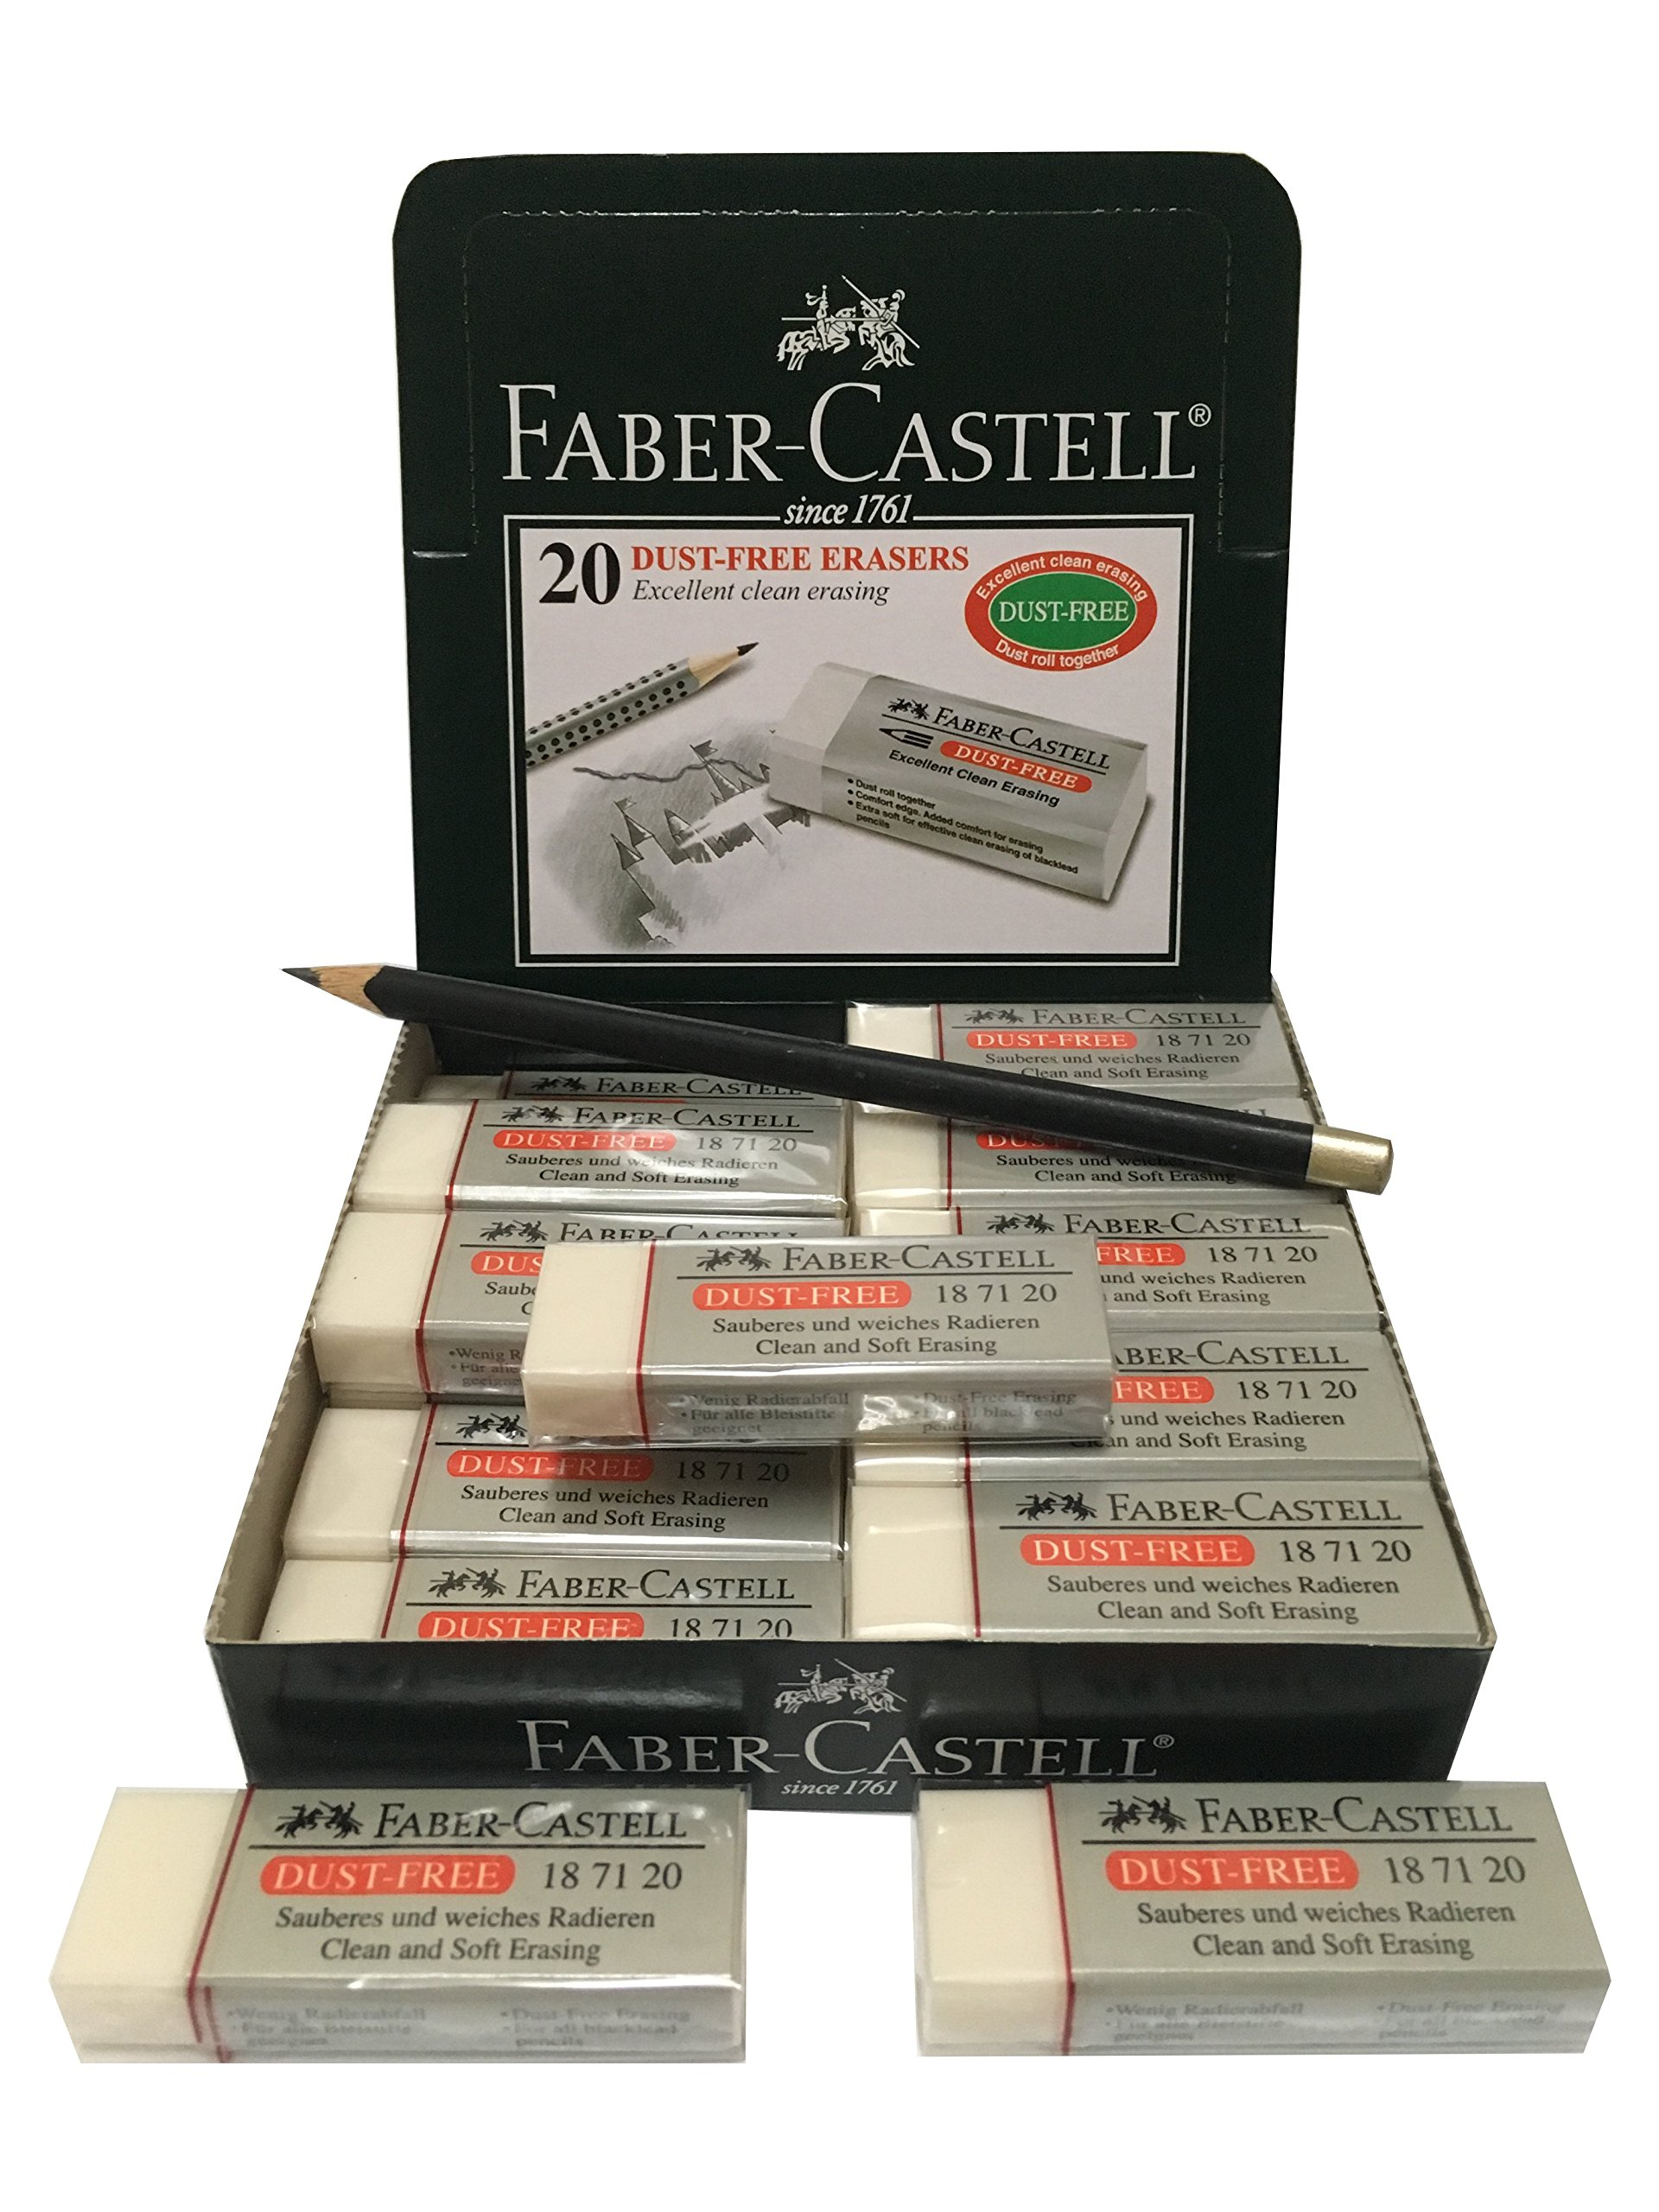 Faber-Castell Large Excellent Dust Free Soft Clean Pencil Eraser Erasers Bulk Pack Suitable For Art Drawing Office & School Use [Box of 20] (6.2x2x1.25cm)